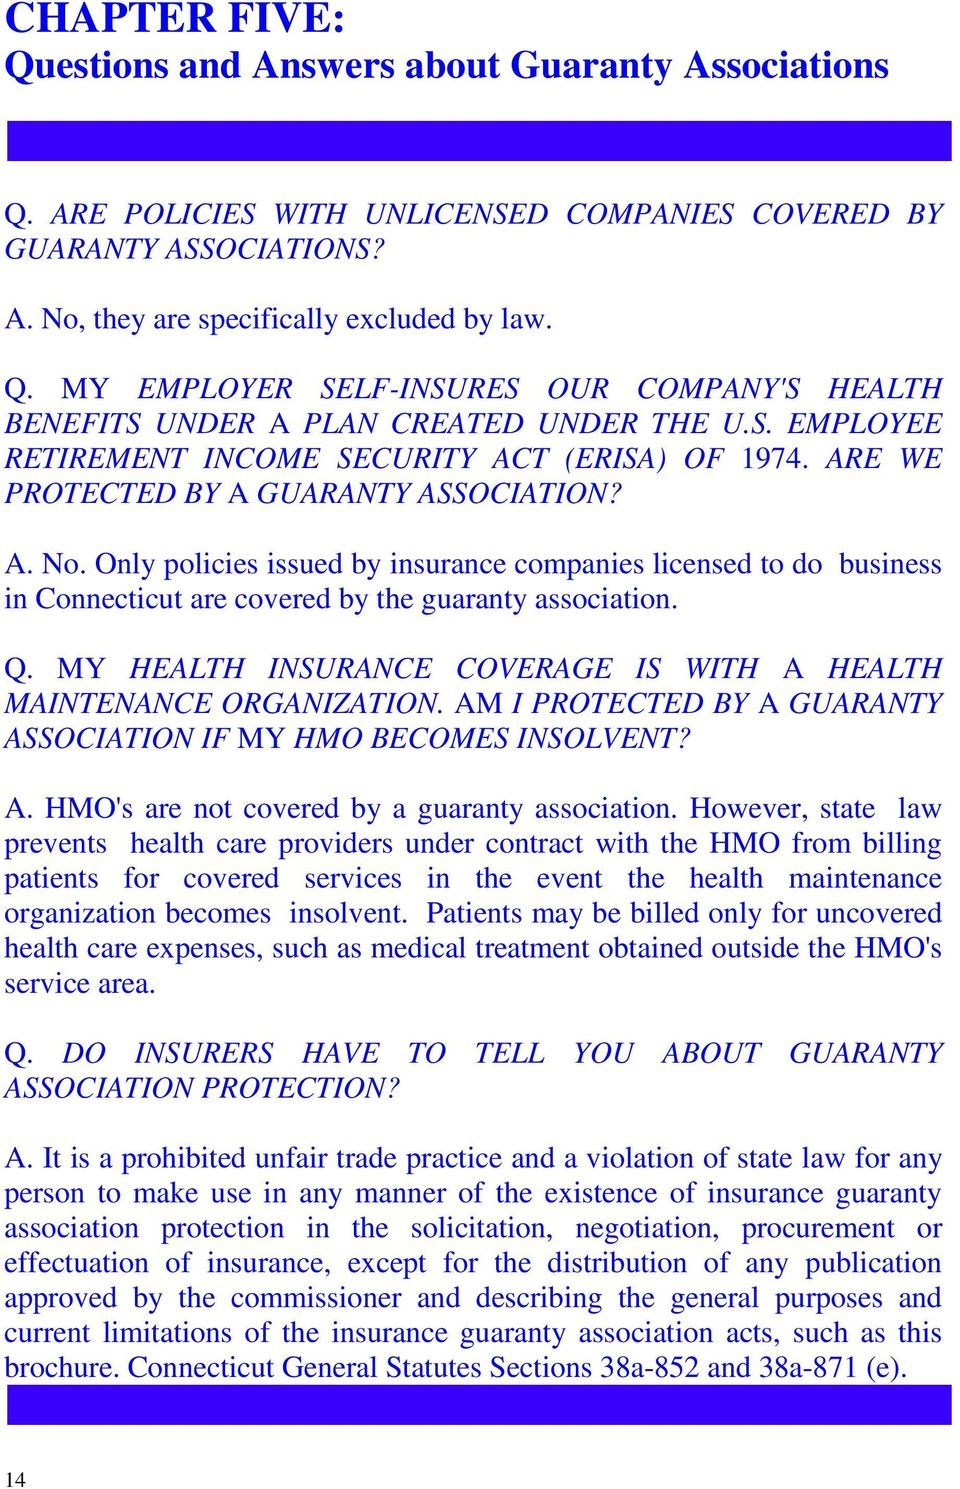 Only policies issued by insurance companies licensed to do business in Connecticut are covered by the guaranty association. Q. MY HEALTH INSURANCE COVERAGE IS WITH A HEALTH MAINTENANCE ORGANIZATION.